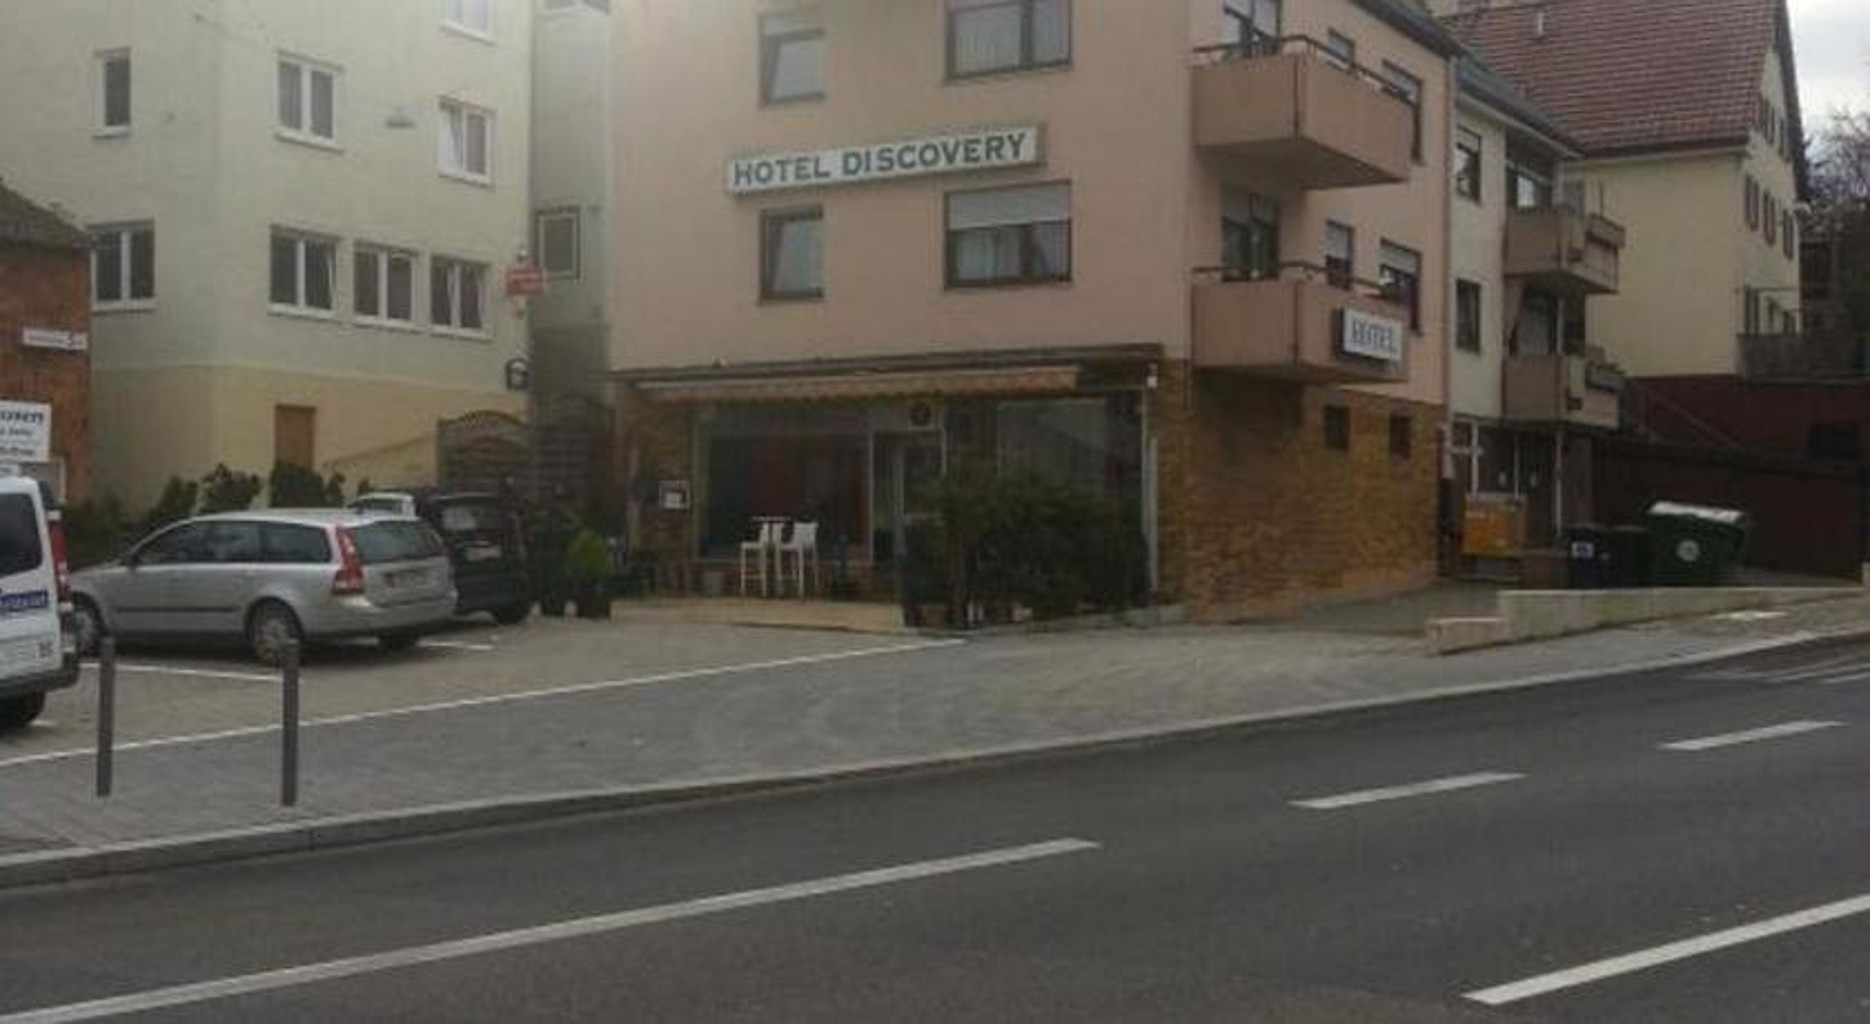 Gallery image of Hotel Discovery